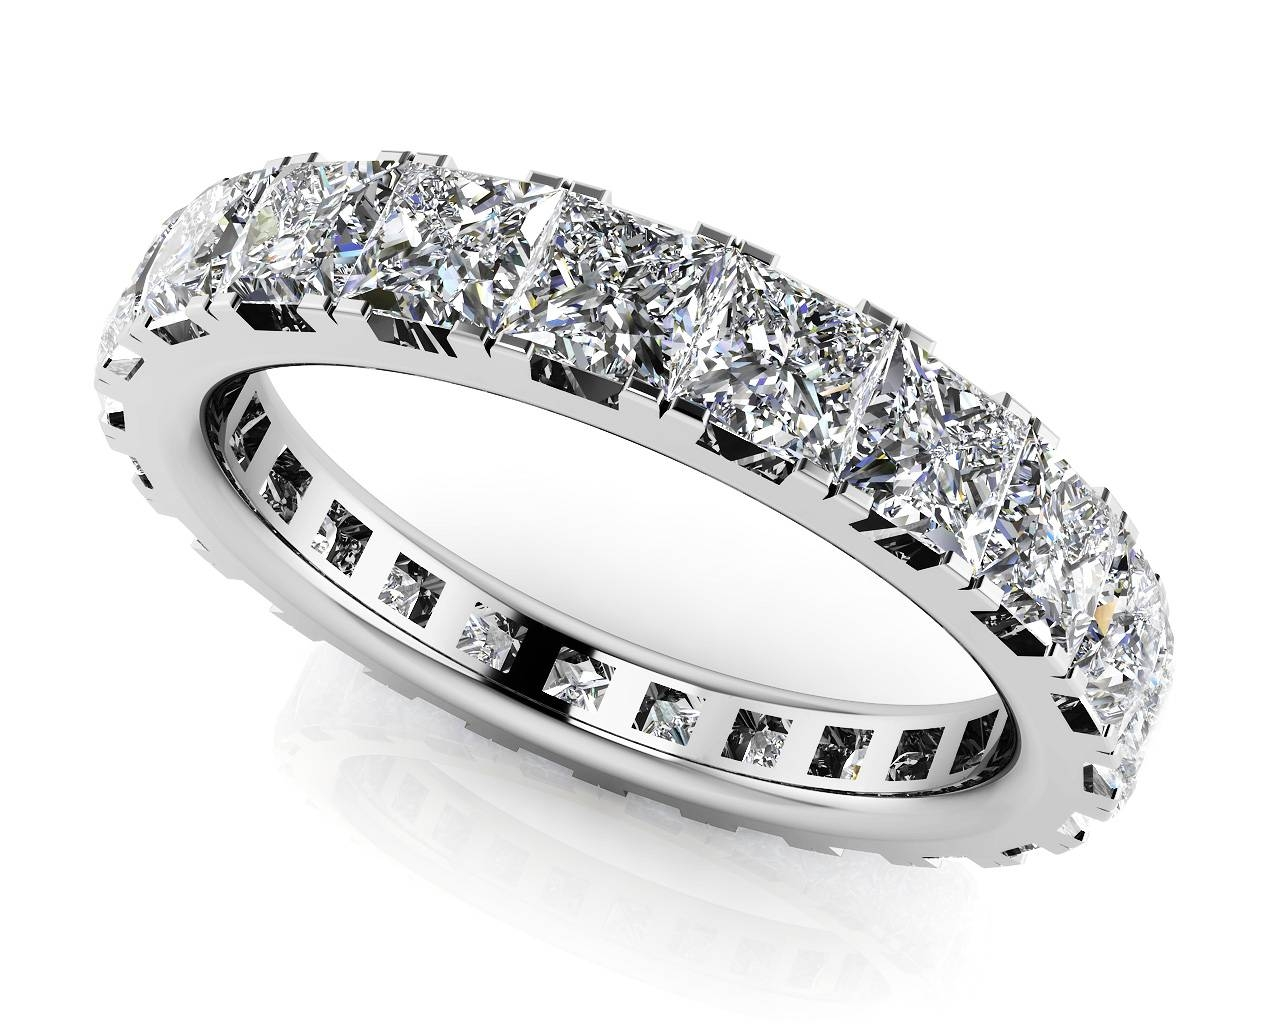 Large Collection Of Quality Diamond Eternity Rings & Bands Throughout Best And Newest Princess Cut Anniversary Rings (View 17 of 25)